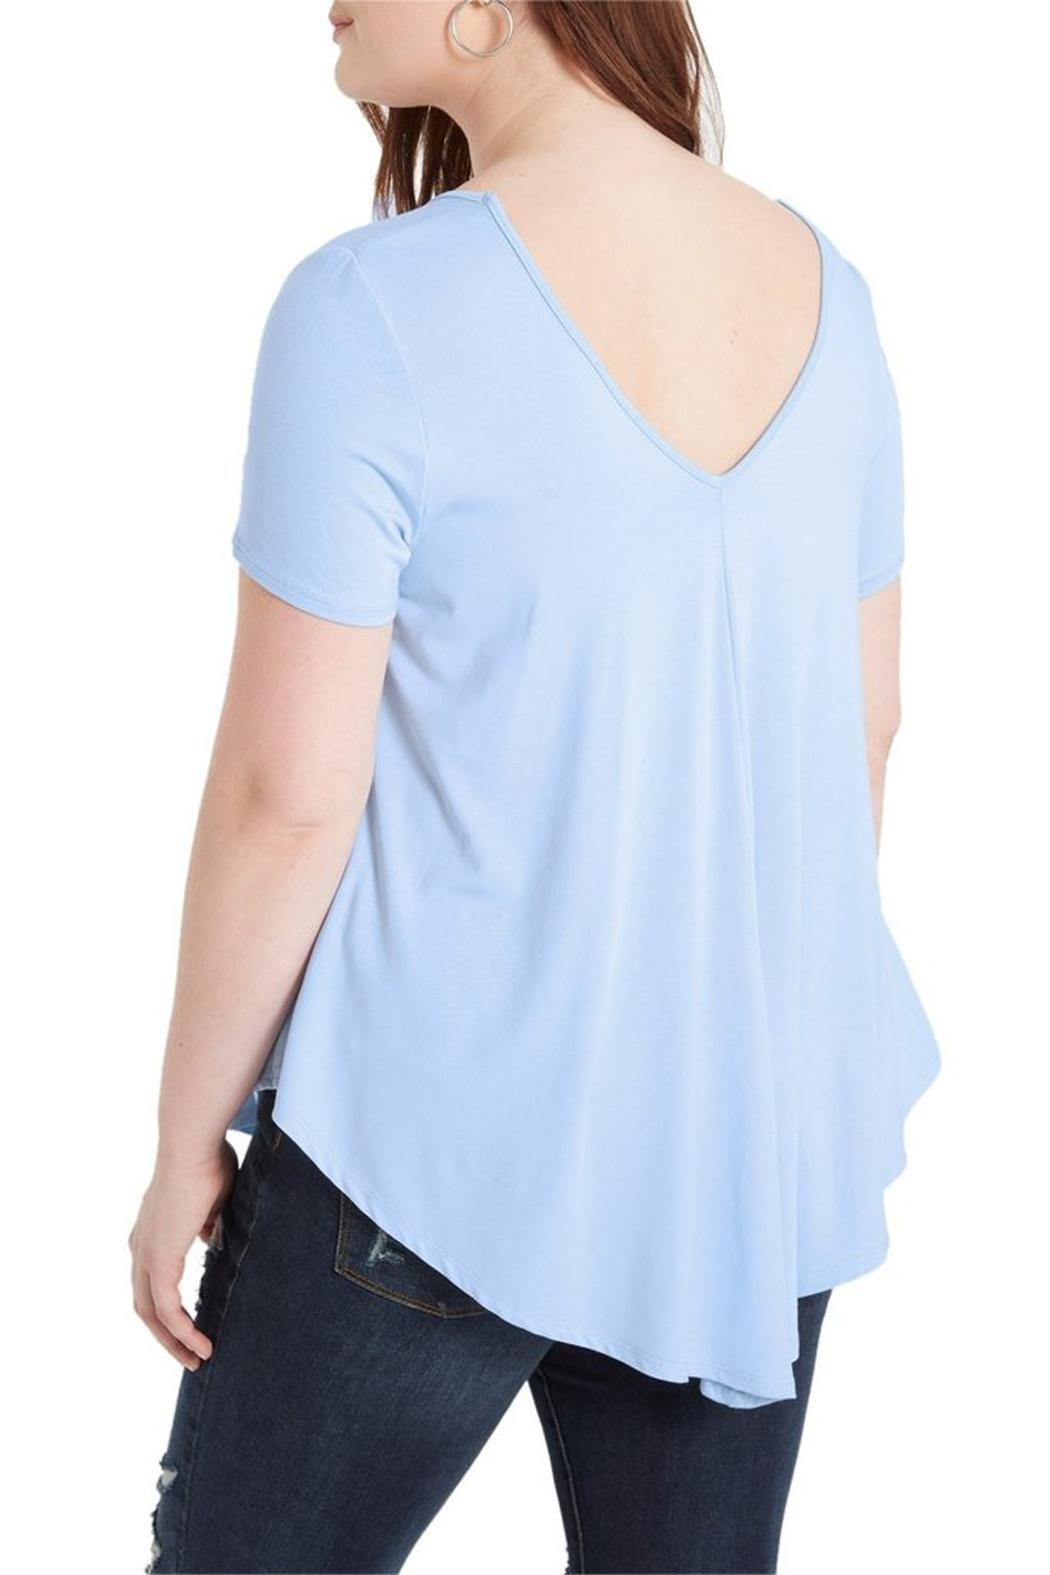 Mai Tai Dusty Blue V Neck - Back Cropped Image